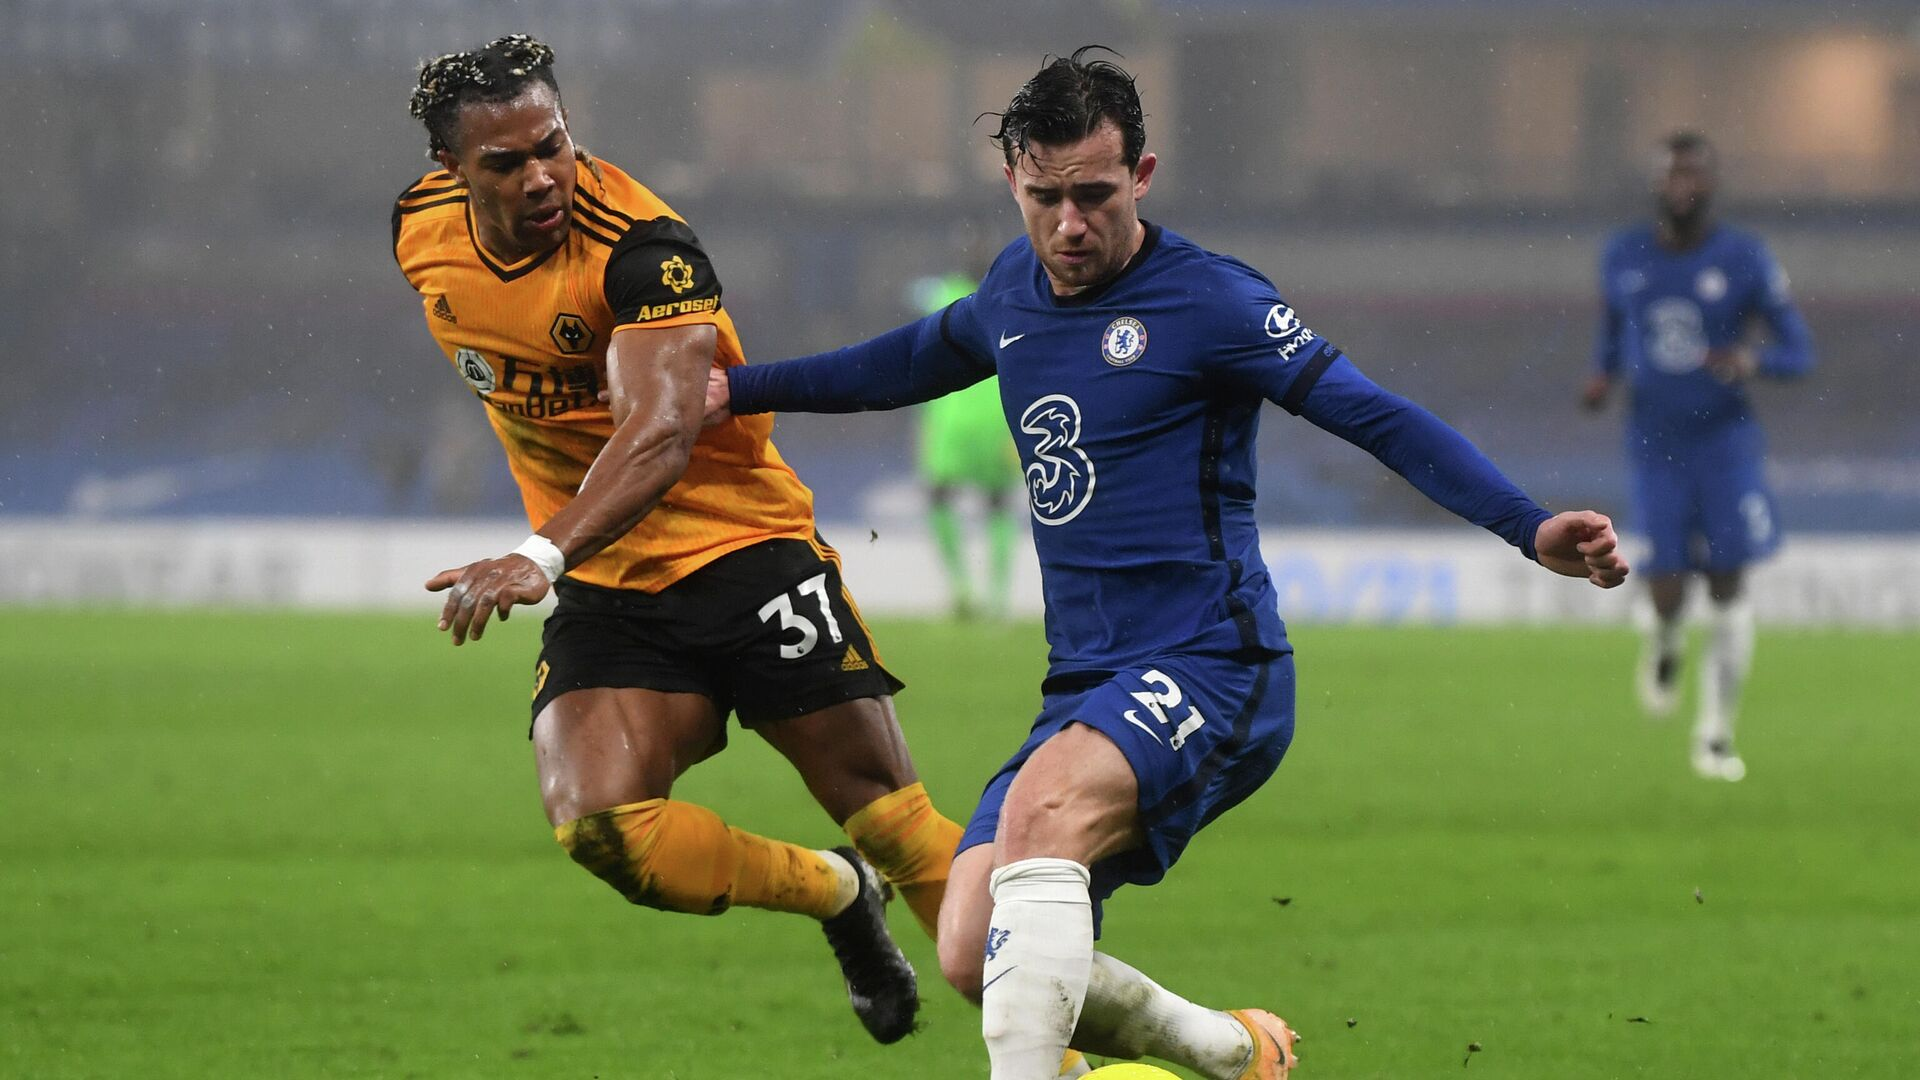 Wolverhampton Wanderers' Spanish midfielder Adama Traore (L) vies with Chelsea's English defender Ben Chilwell during the English Premier League football match between Chelsea and Wolverhampton Wanderers at Stamford Bridge in London on January 27, 2021. (Photo by NEIL HALL / POOL / AFP) / RESTRICTED TO EDITORIAL USE. No use with unauthorized audio, video, data, fixture lists, club/league logos or 'live' services. Online in-match use limited to 120 images. An additional 40 images may be used in extra time. No video emulation. Social media in-match use limited to 120 images. An additional 40 images may be used in extra time. No use in betting publications, games or single club/league/player publications. /  - РИА Новости, 1920, 27.01.2021